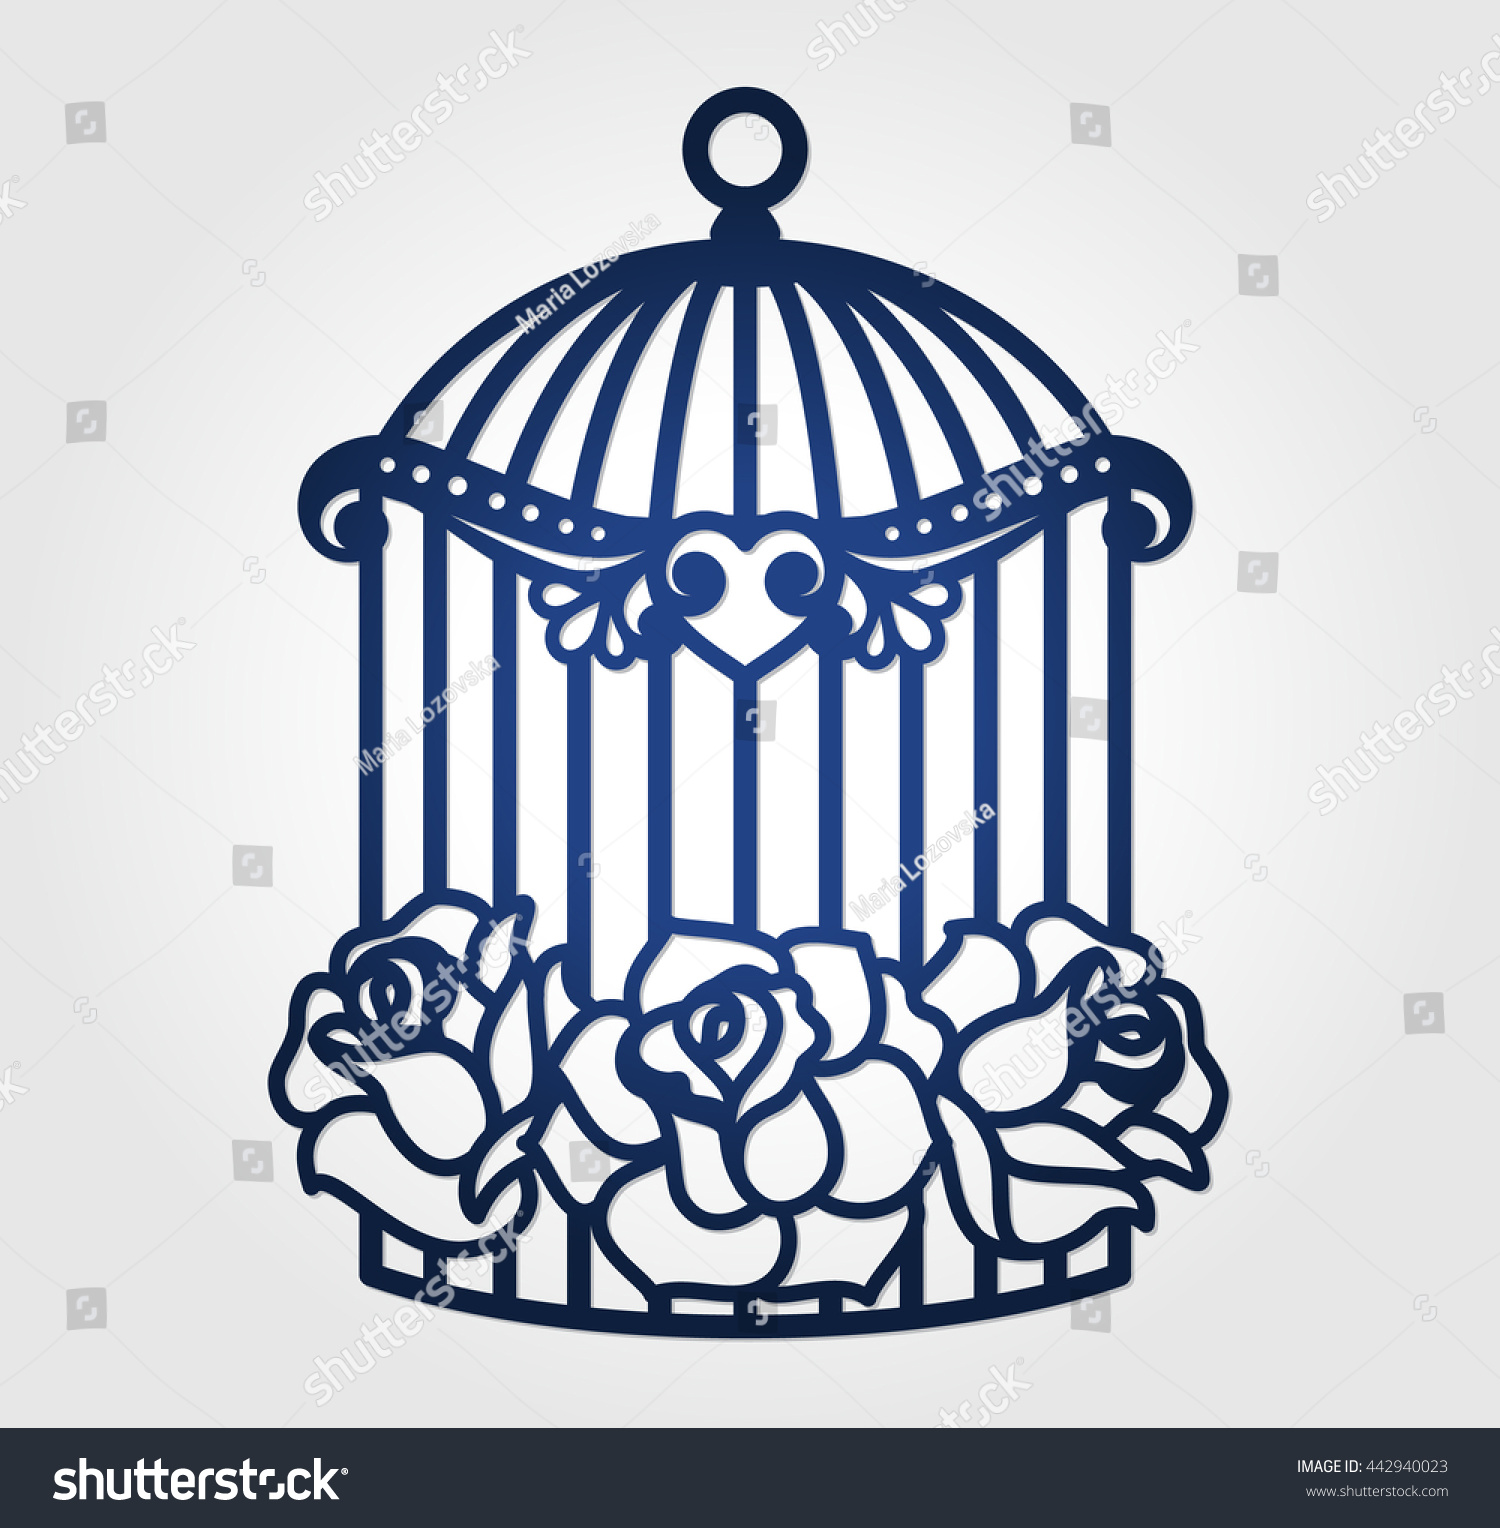 Laser cut wedding birdcage cutout paper stock vector 442940023 laser cut wedding birdcage with cutout paper roses wall decor decal for cutting cage amipublicfo Choice Image